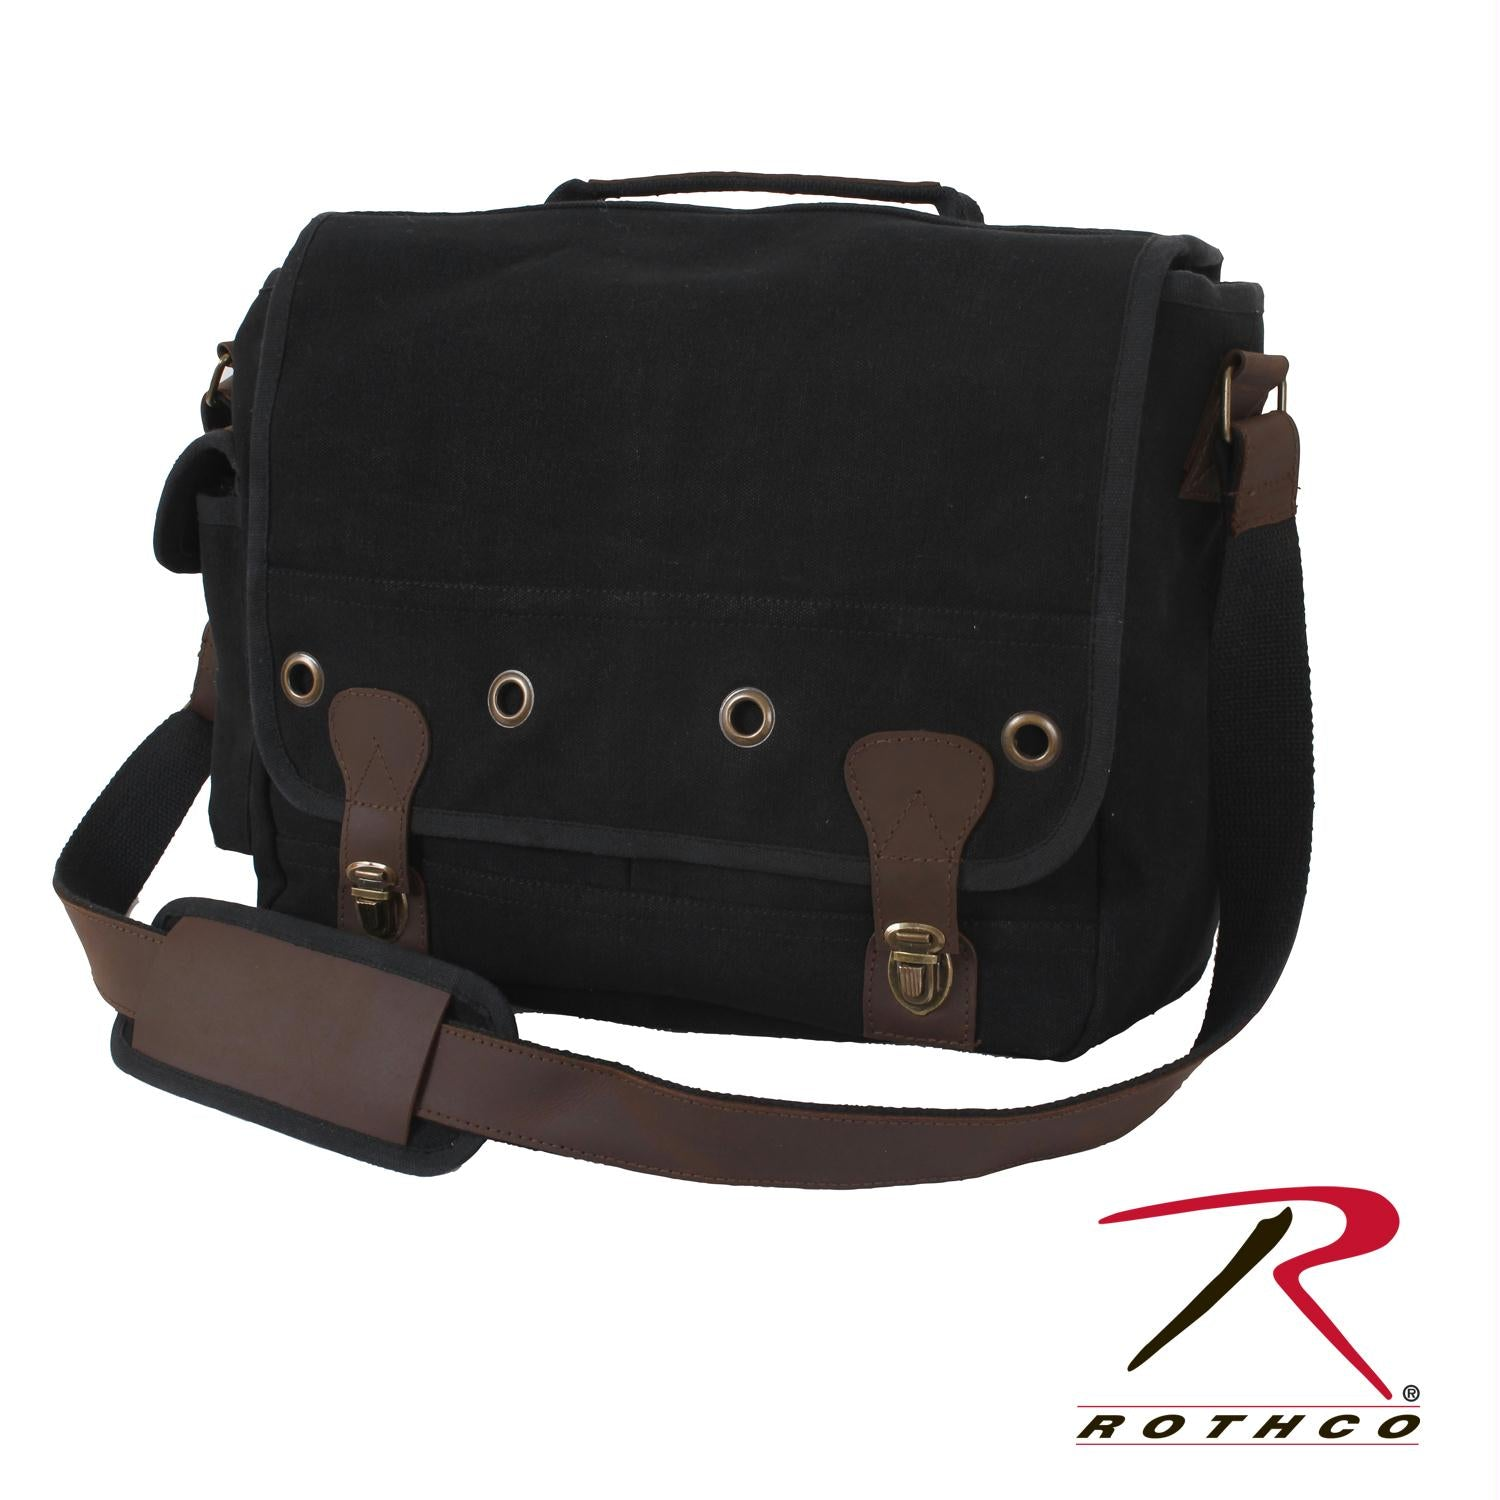 Rothco Canvas Trailblazer Laptop Bag - Black